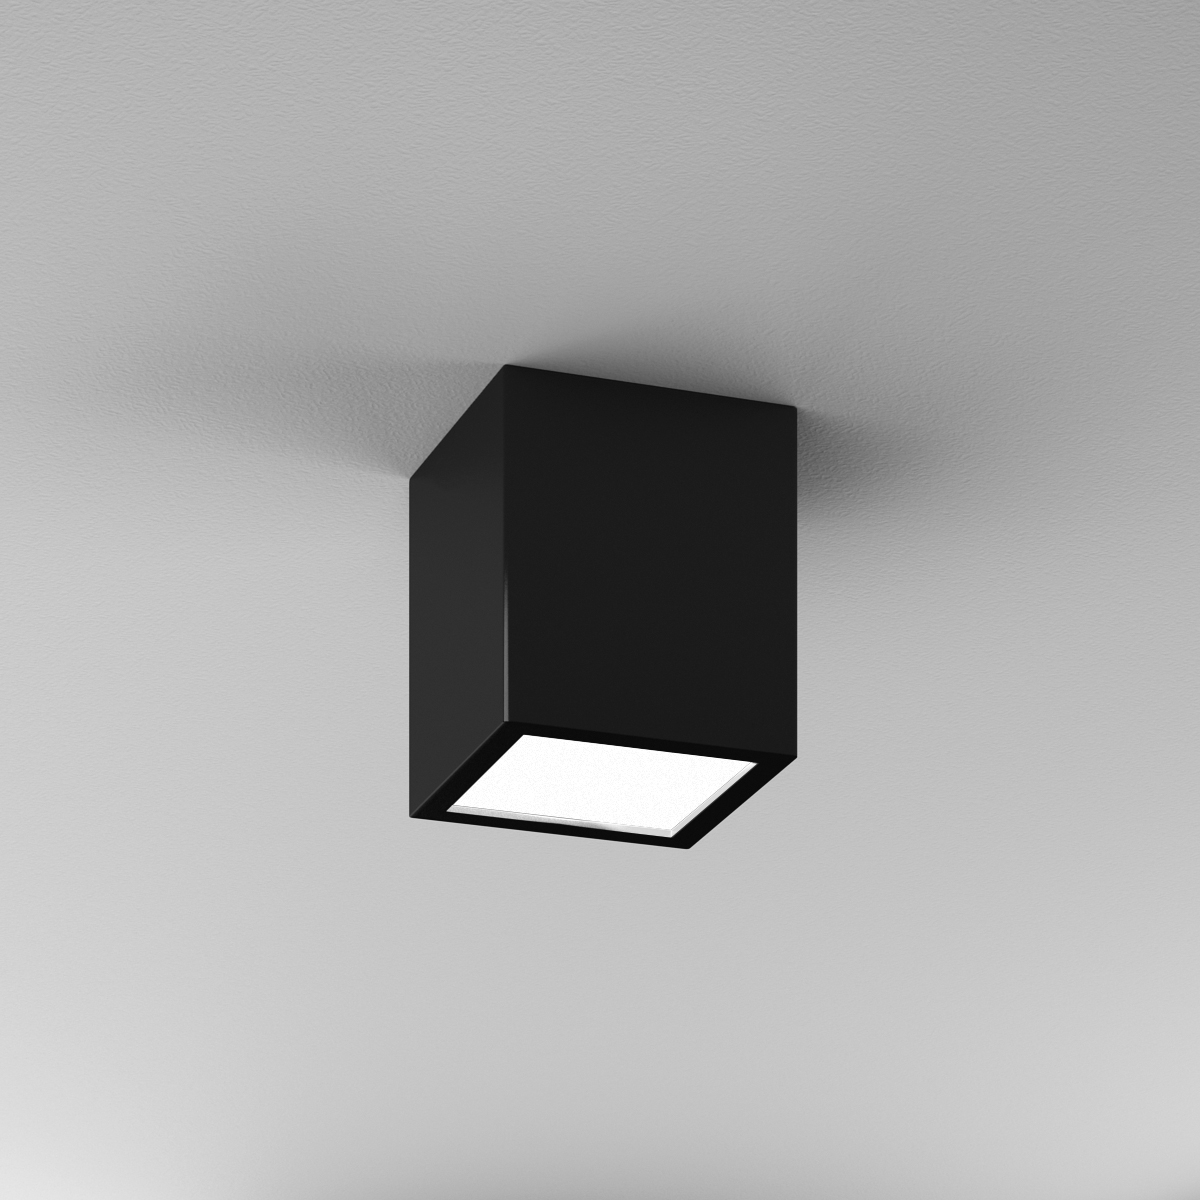 Led soffitto incasso: led ceiling light incasso a soffitto built ...